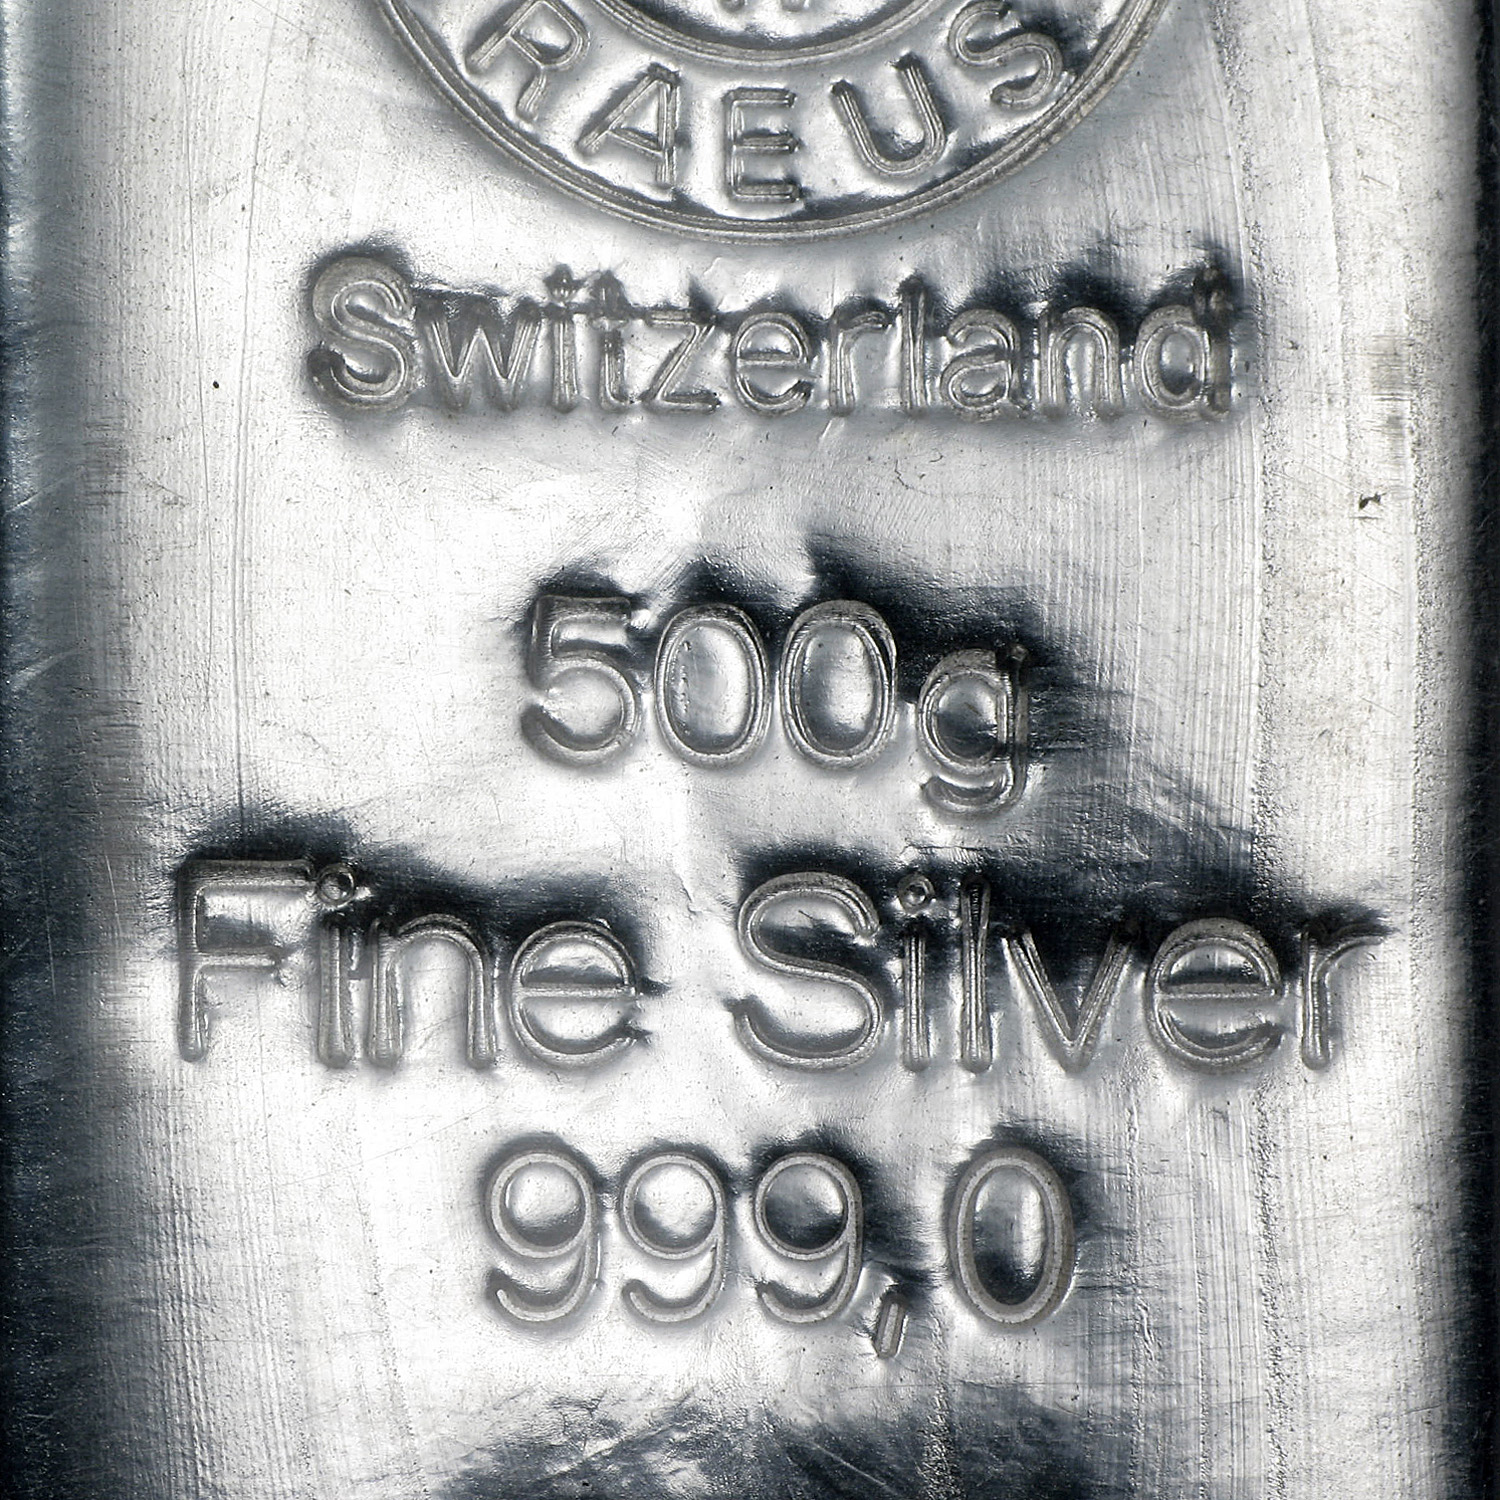 500 gram Silver Bar - Argor/Heraeus (Switzerland)